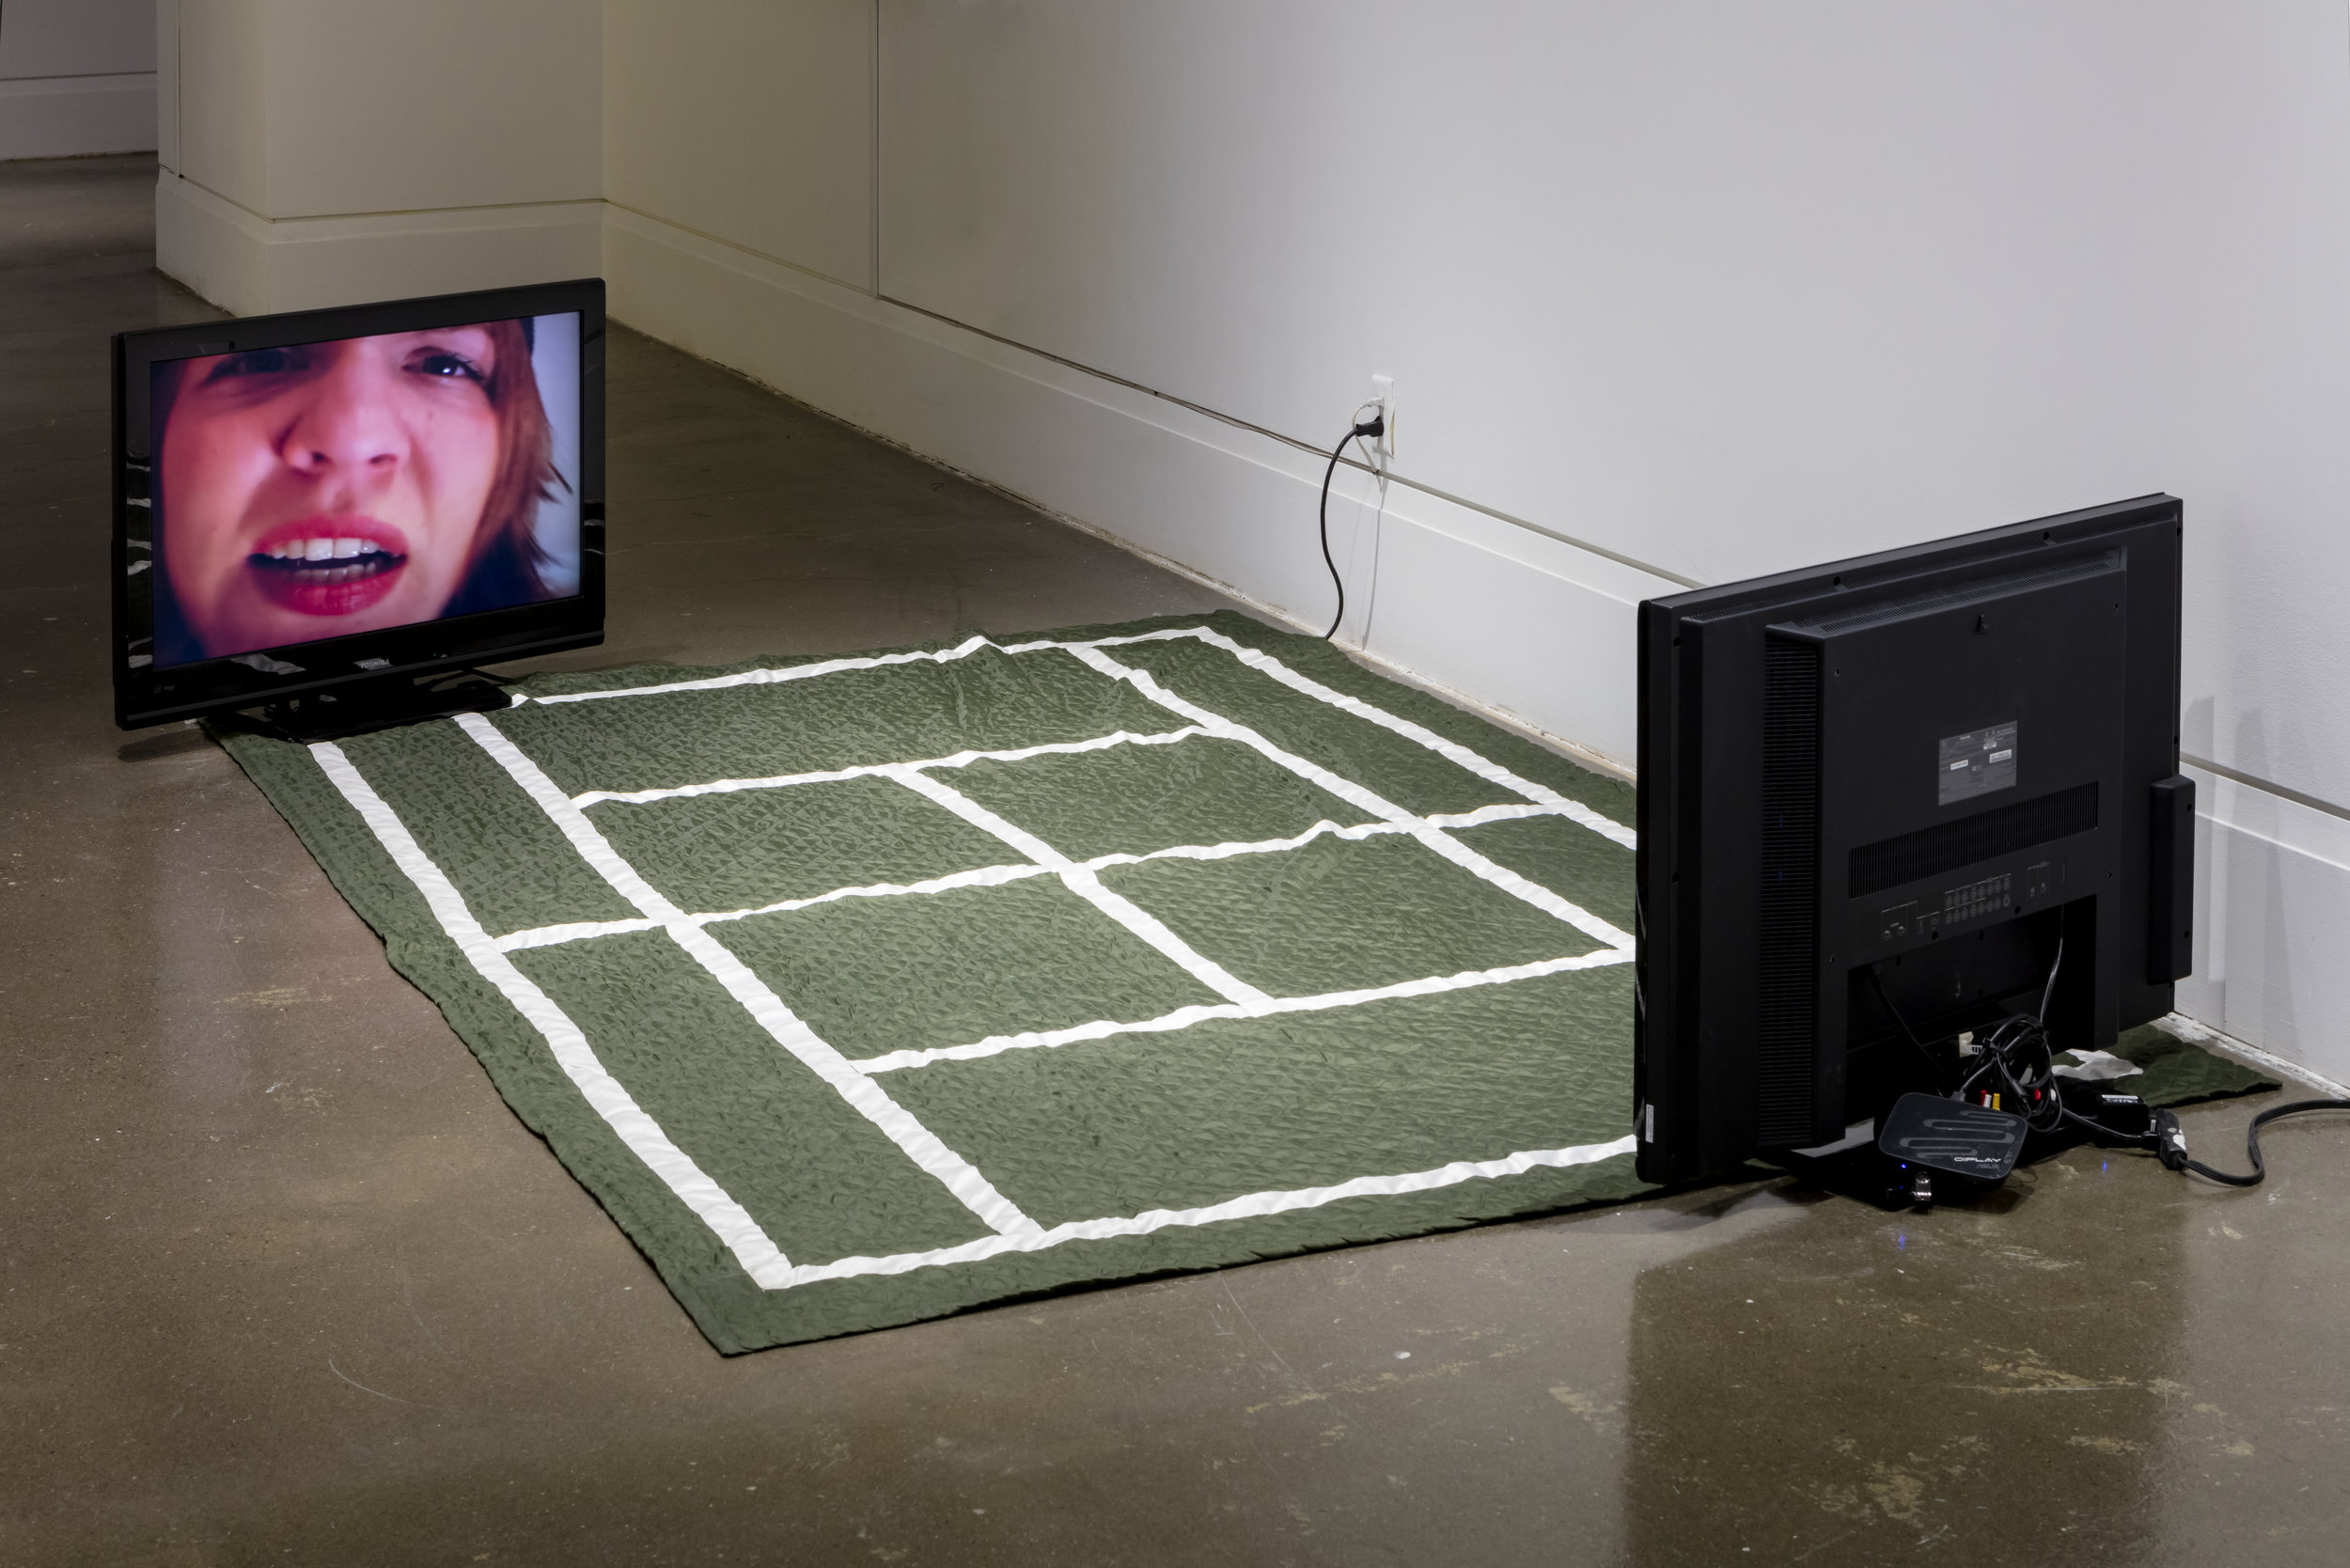 Weber & Schneider (Sonya Horn and Tina Schneider),  Wimbledom , 2000, Textile sculpture, two-channel video. Robert Freeman Gallery, Art Gallery of Mississauga. Photo by Toni Hafkenscheid.